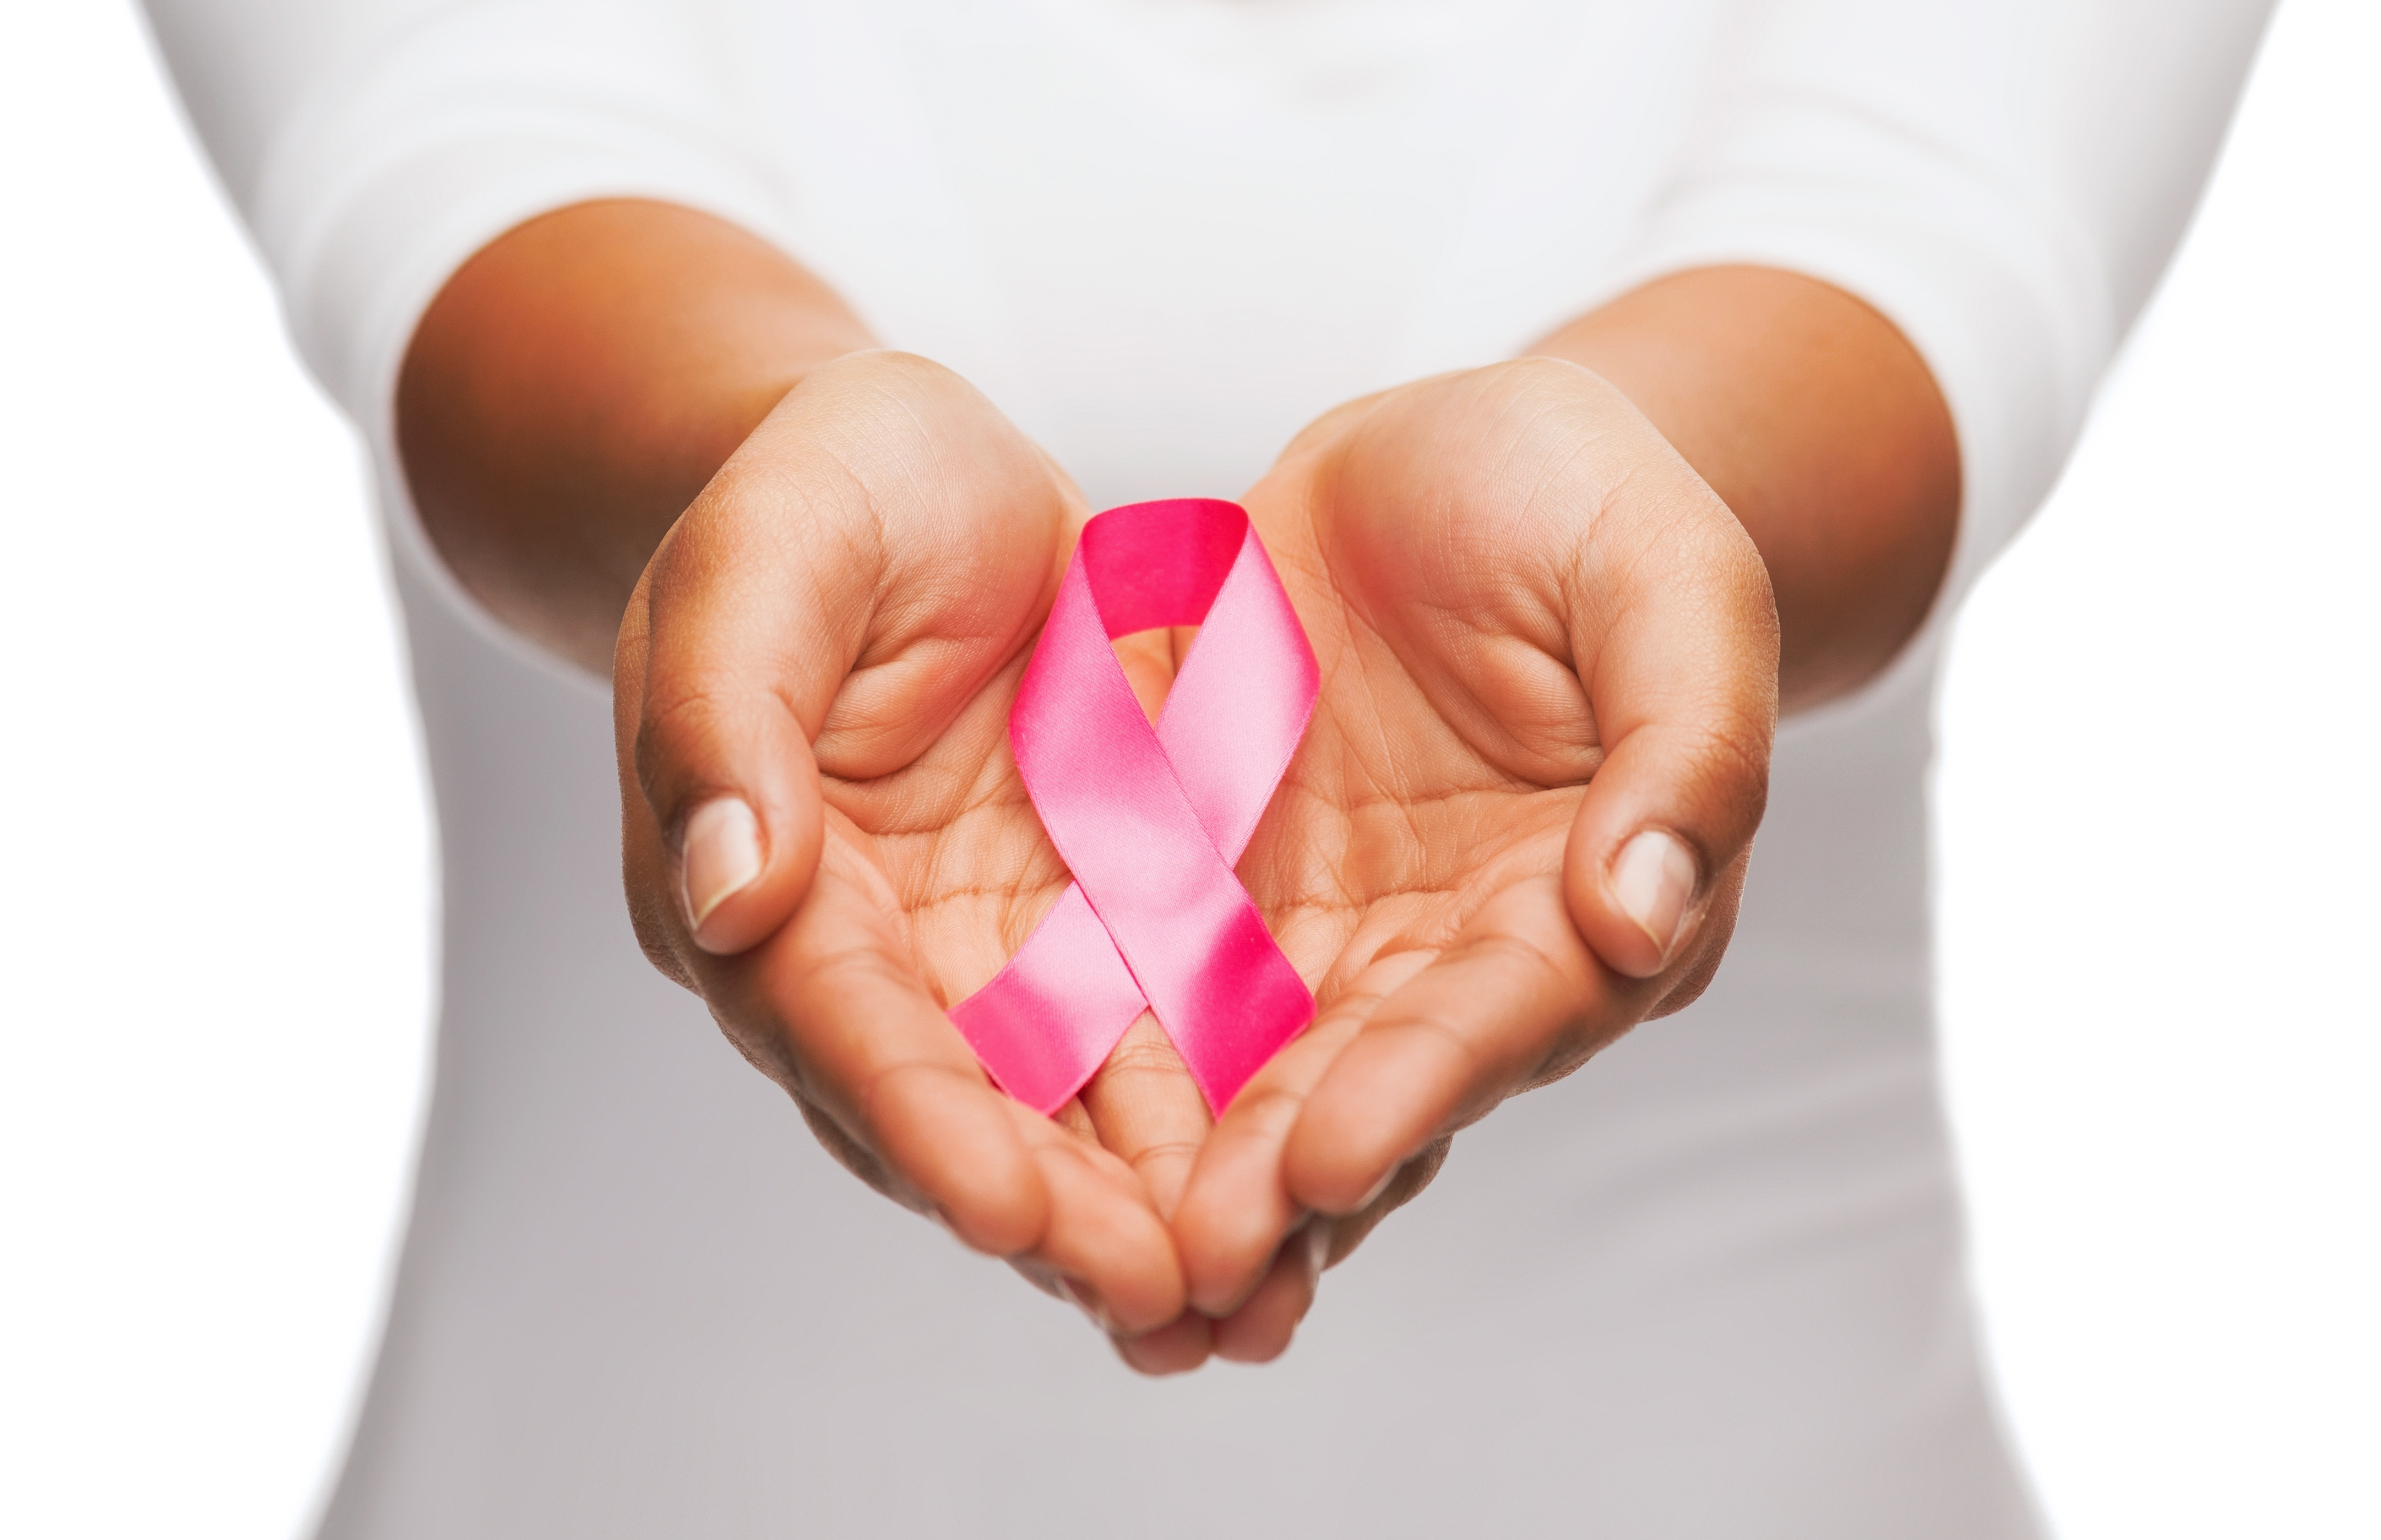 Breast Cancer Treatment Without Chemotherapy? Thanks To This Computer Algorithm!